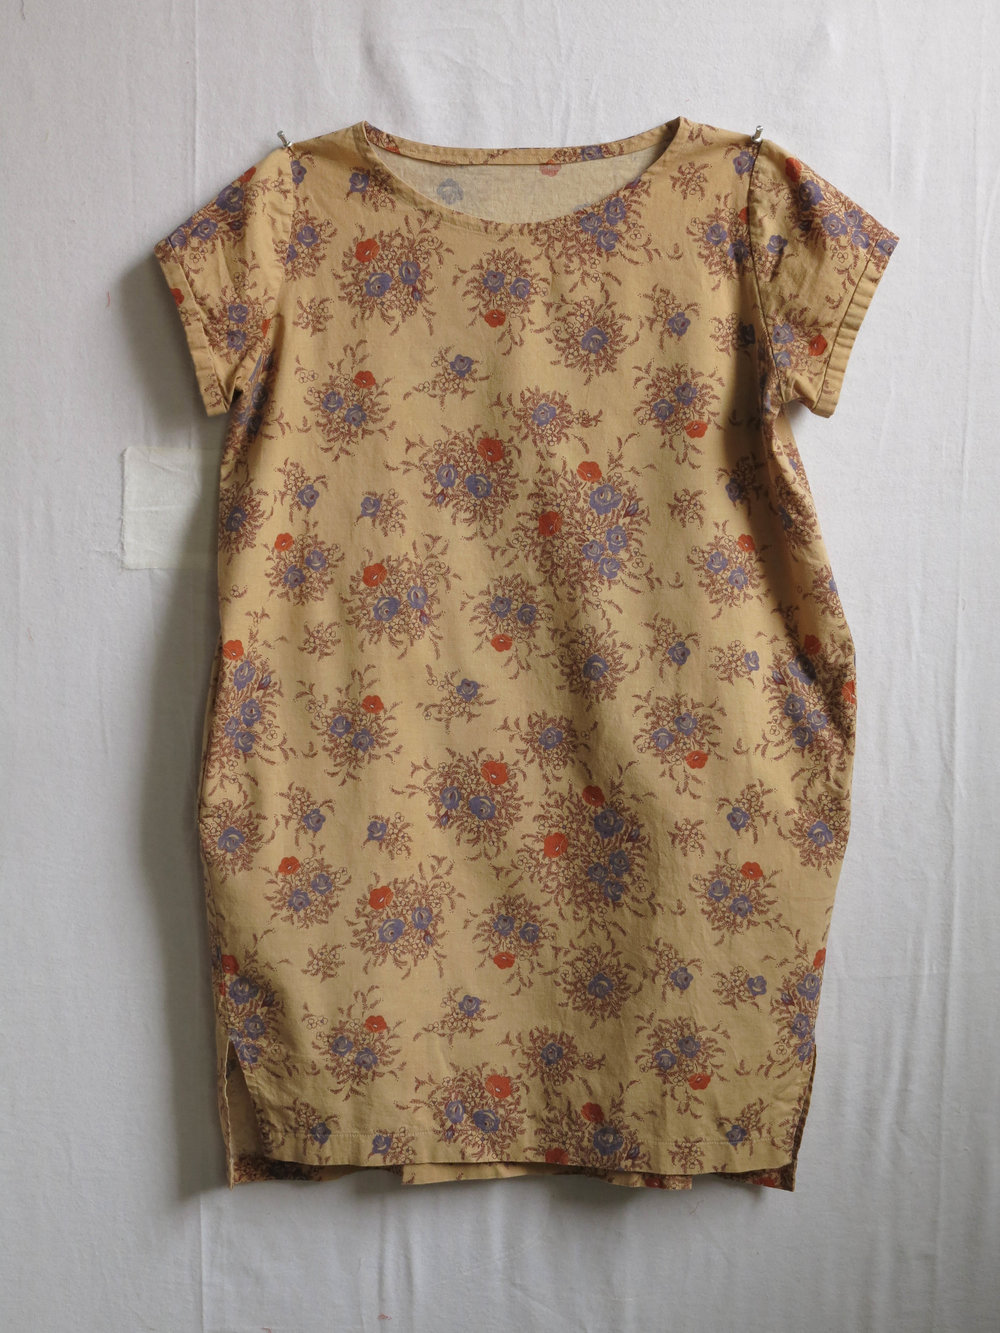 An Inari Tee dress, pattern by Named, in some Japanese cotton/linen blend purchased years ago online.